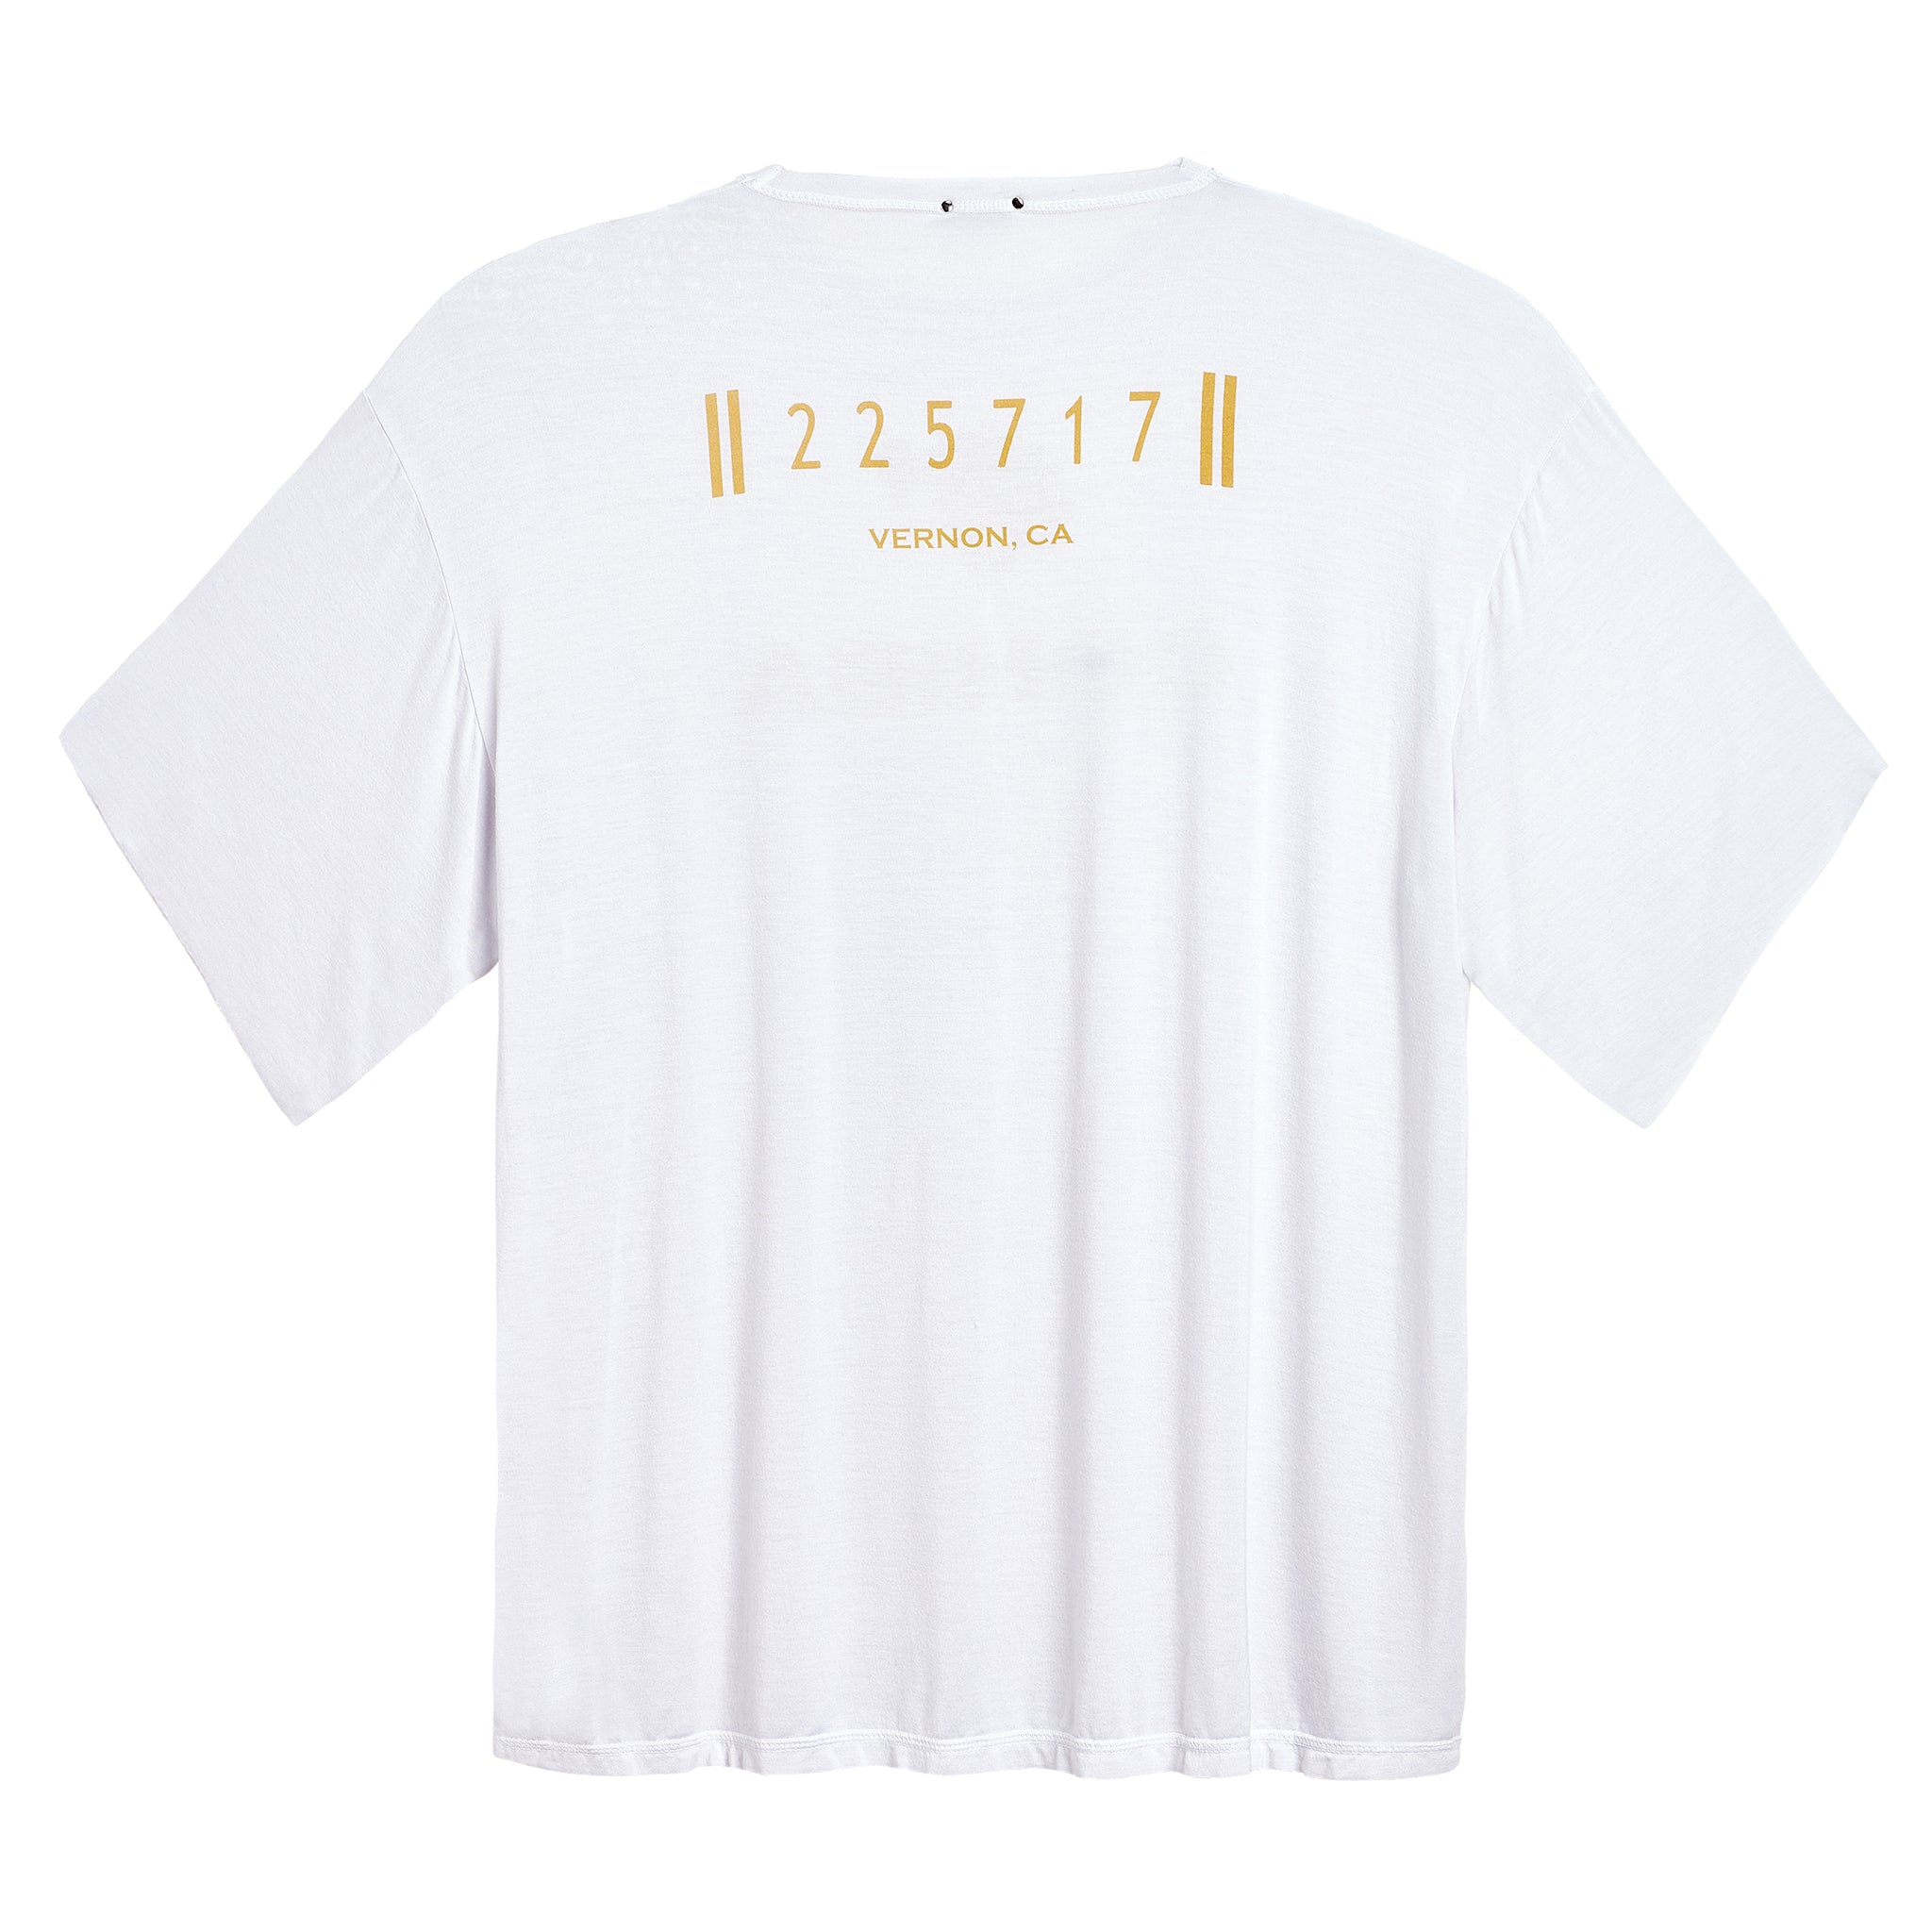 COHIBA XL T SHIRT